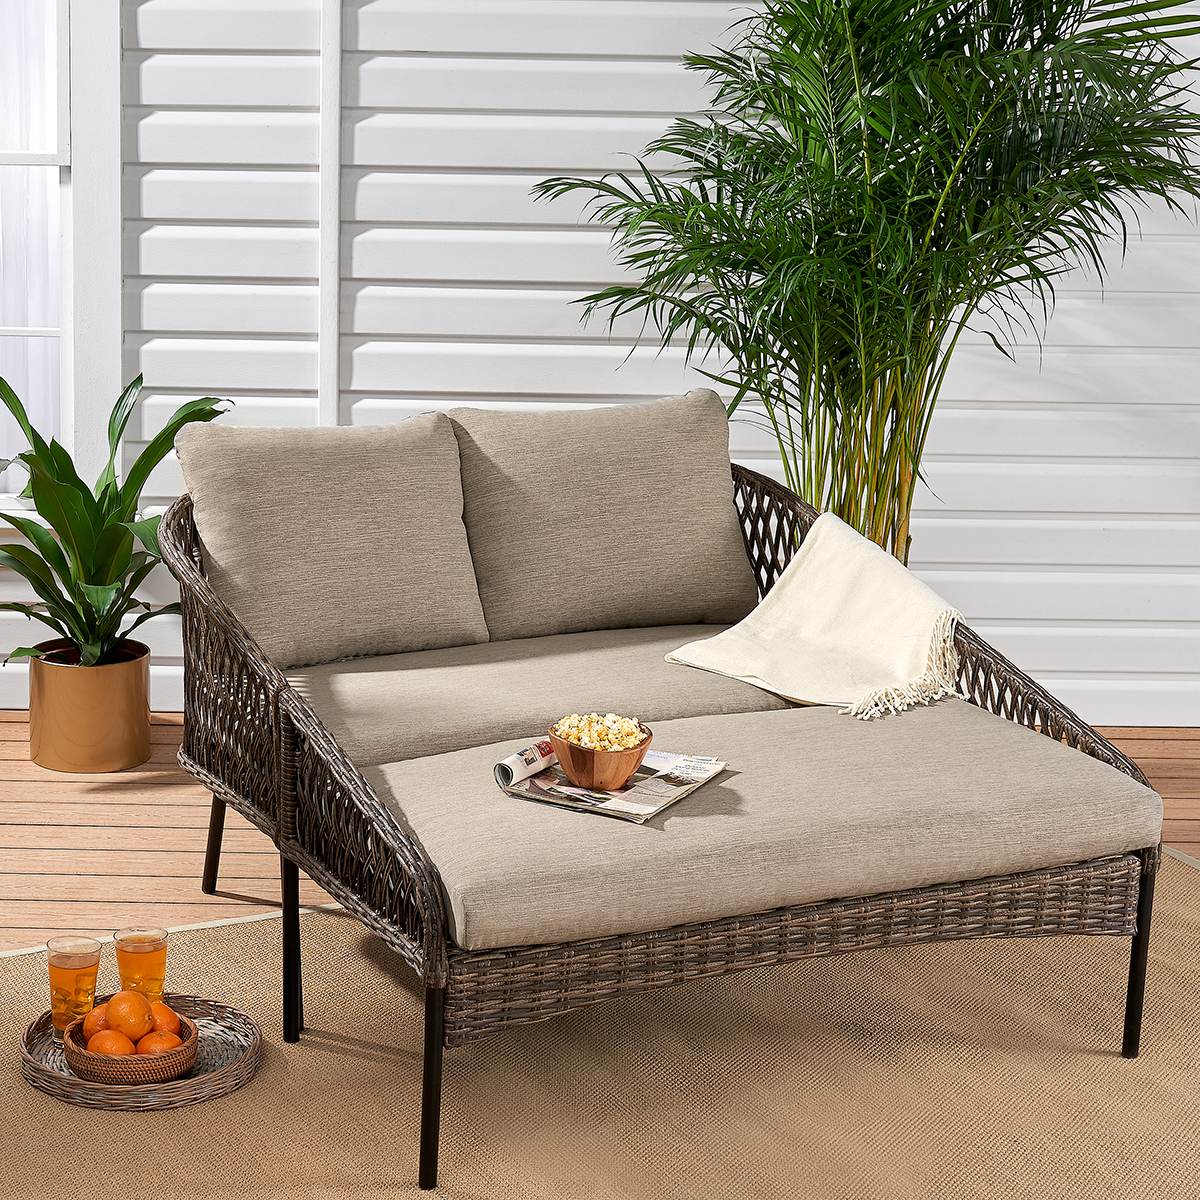 20 pieces of patio furniture to buy on sale right now cameron proffitt